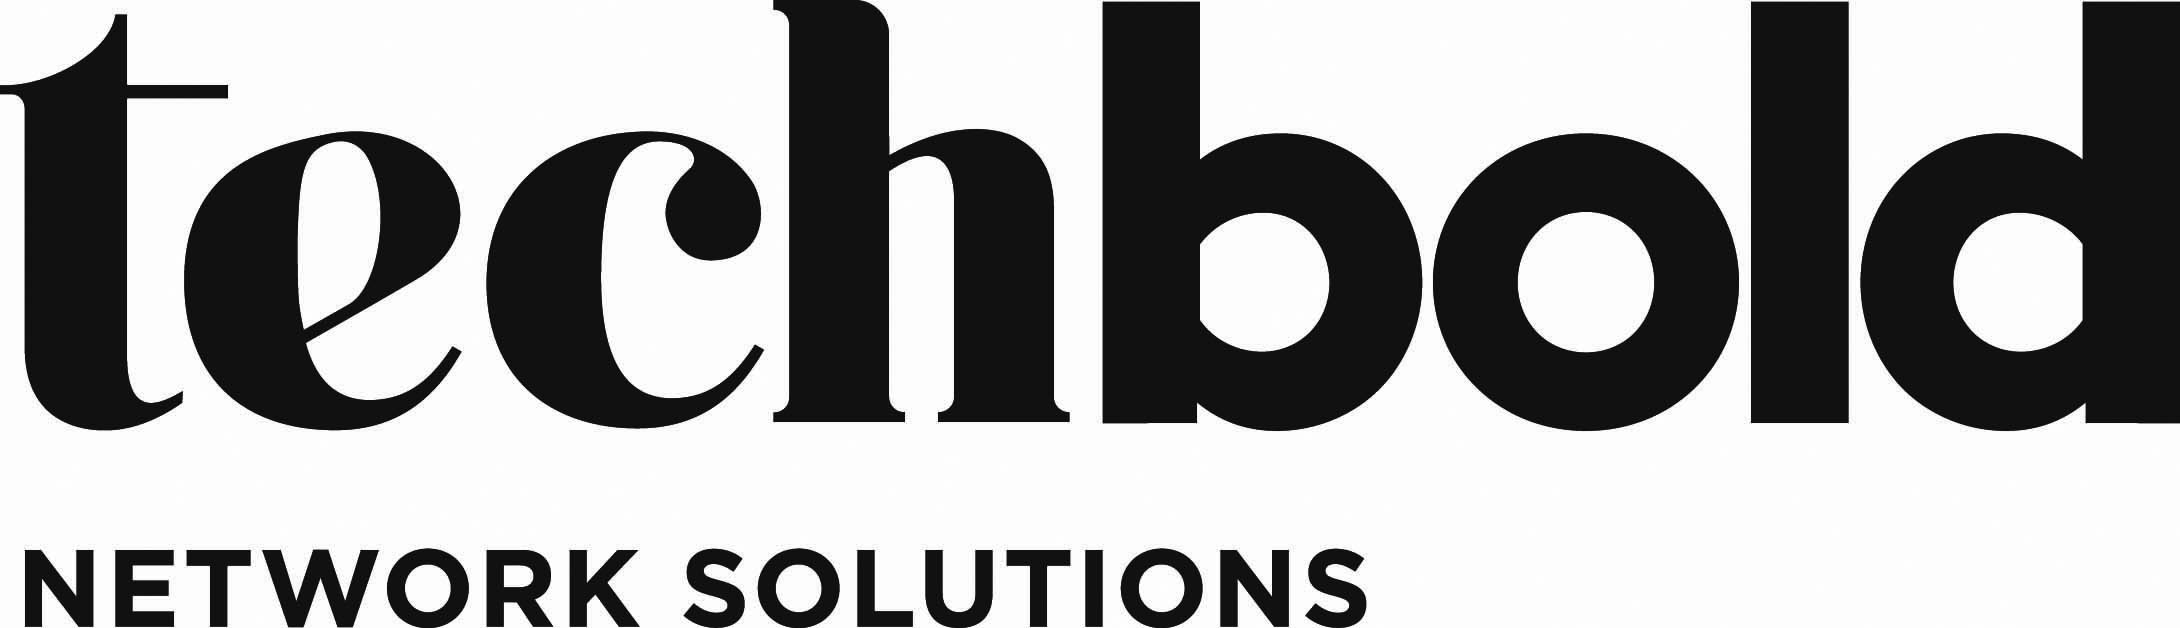 techbold network solutions GmbH